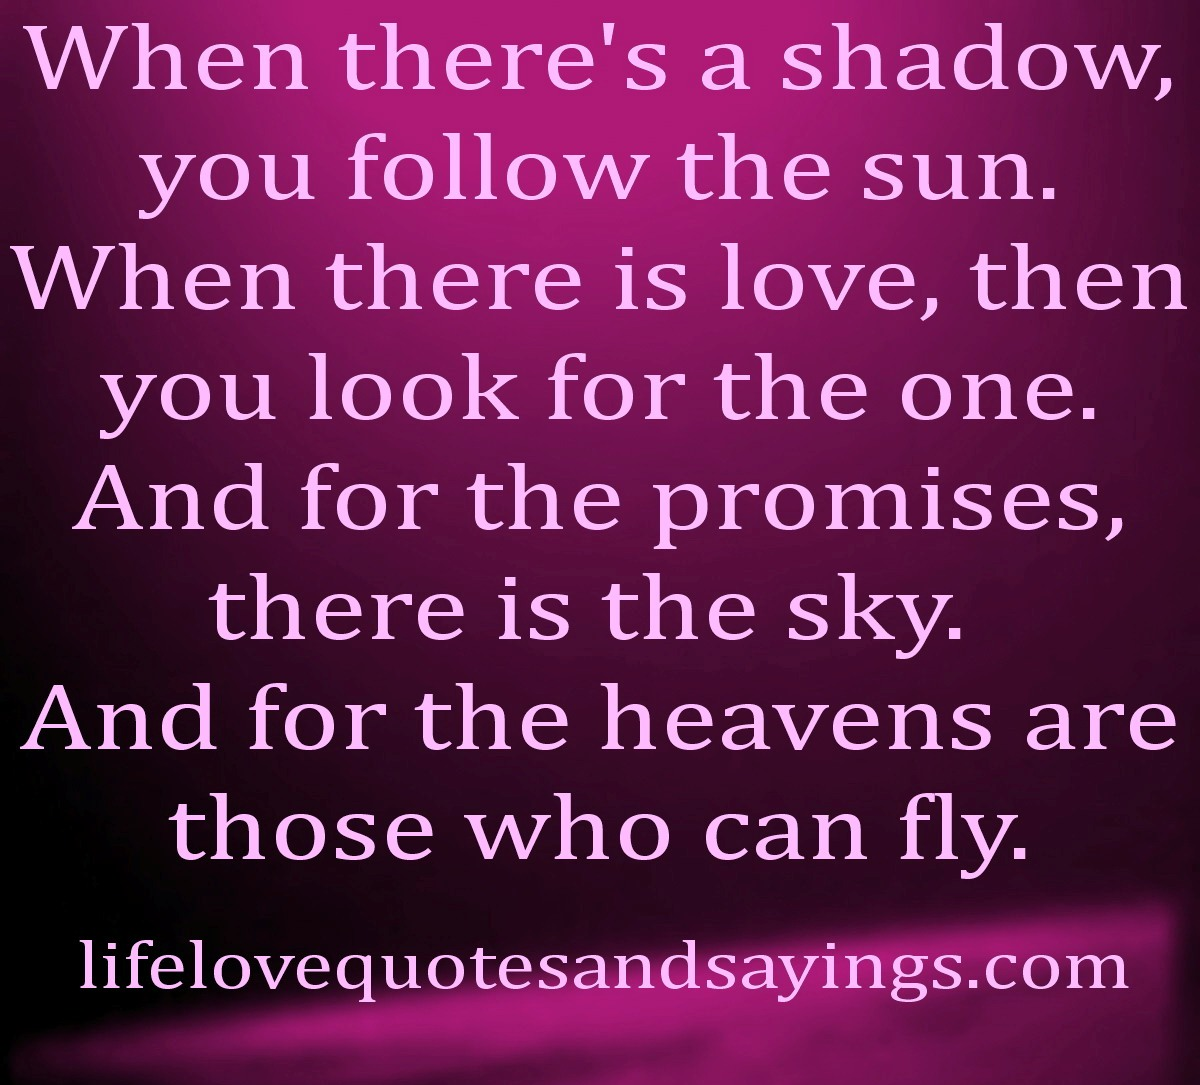 True Love Quotes And Sayings Quotesgram: Shadow And Love Quotes. QuotesGram